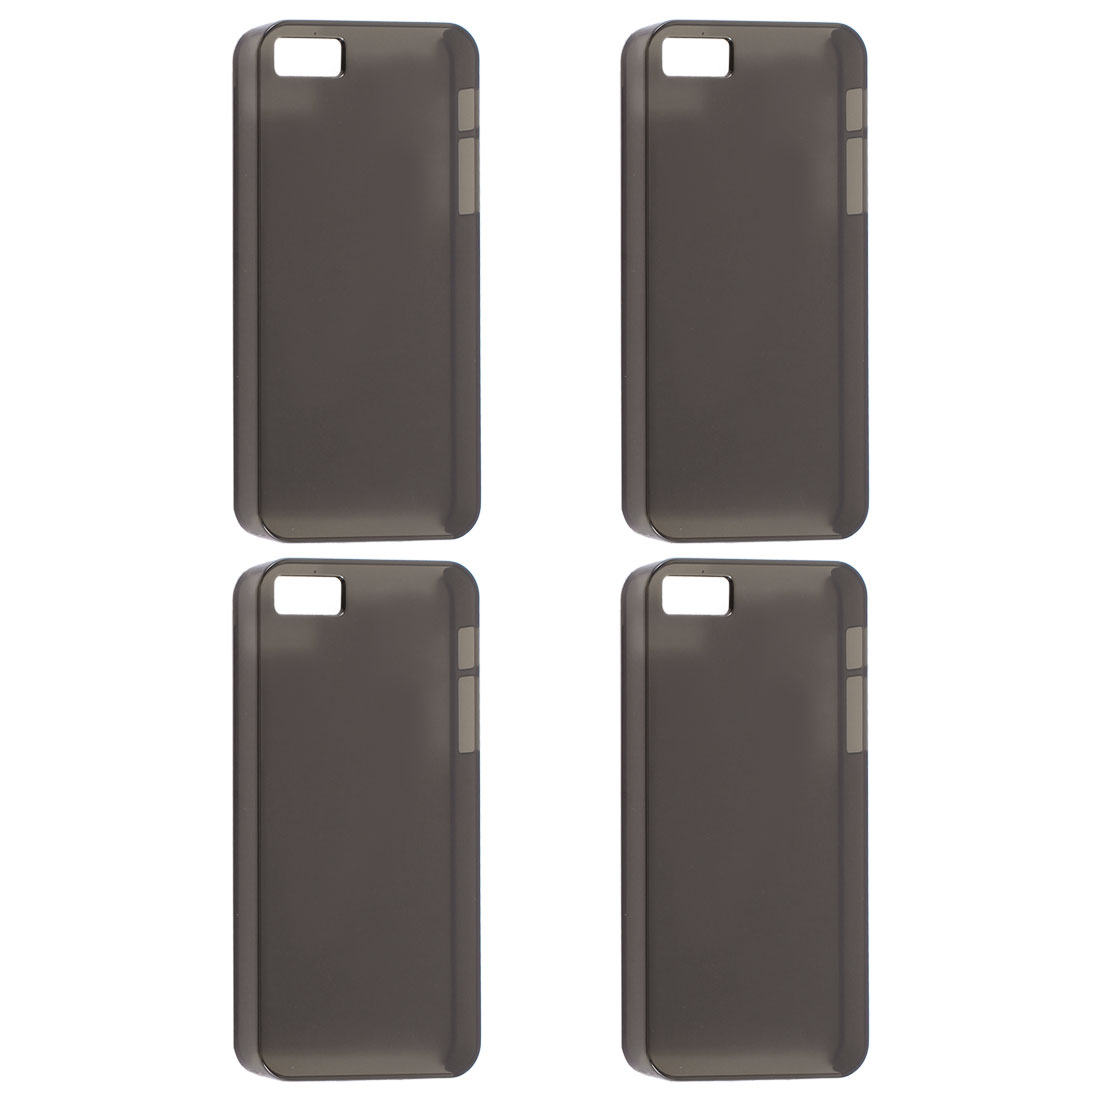 4 Pcs Black Plastic Protector Shell Back Case Cover for iPhone 5 5S 5G 5GS